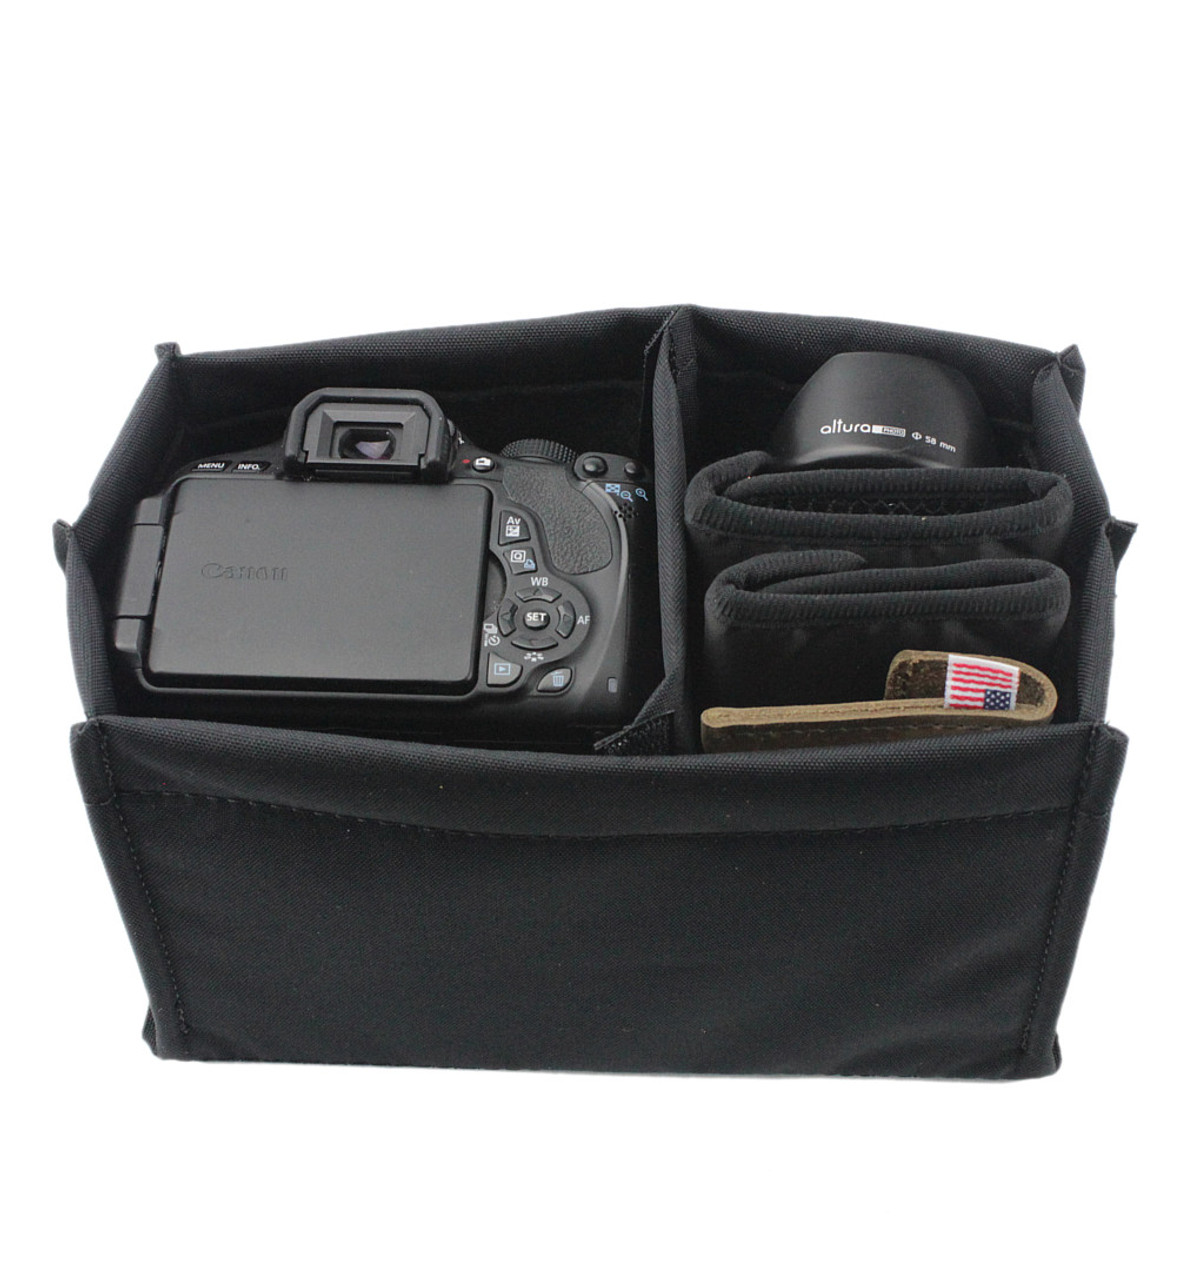 Adjustable Camera Bag Insert – Small sized Leather Bag Insert